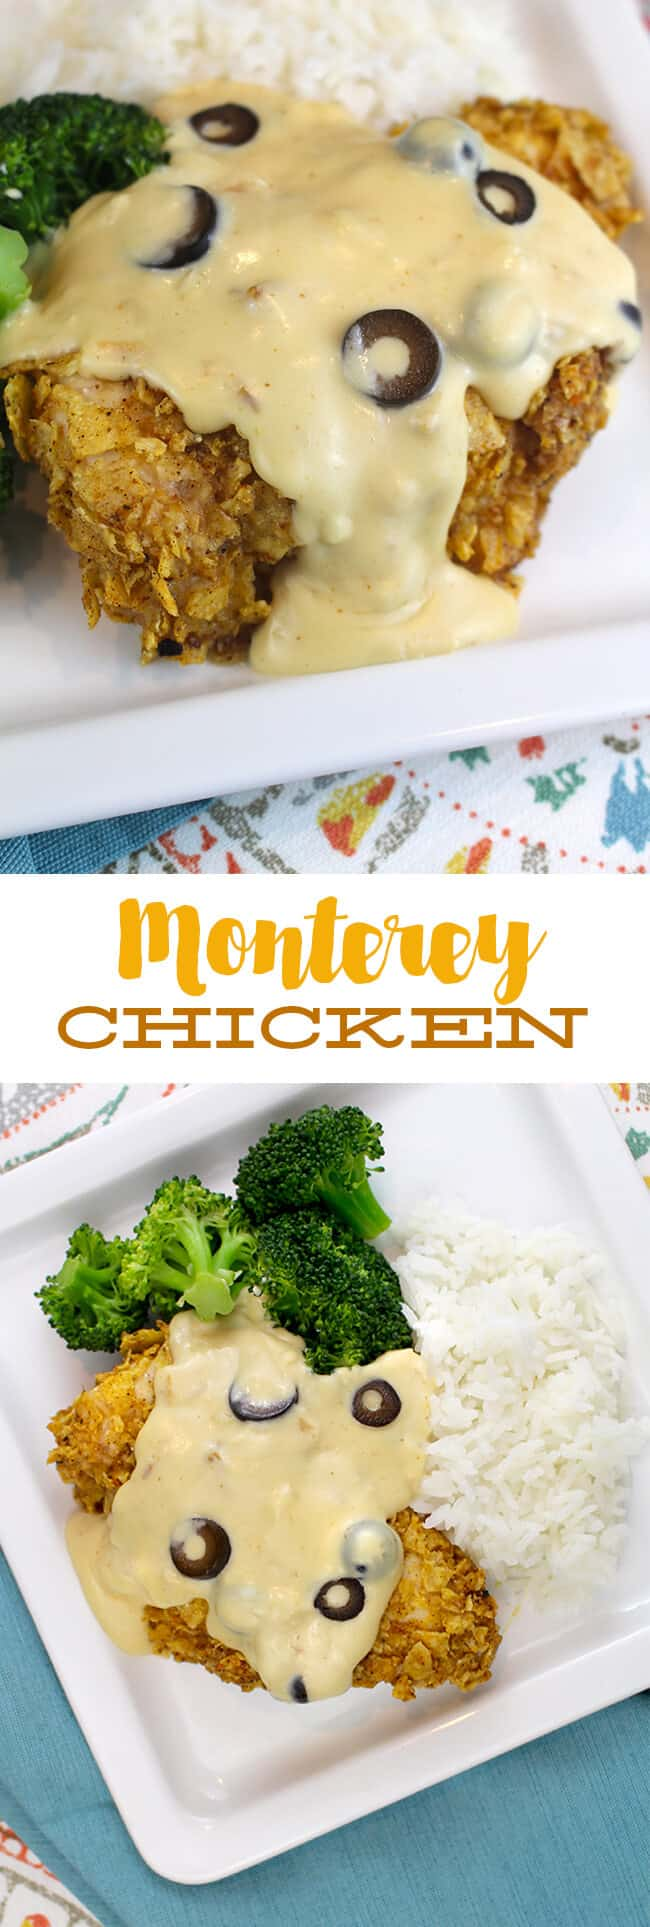 Best Family Chicken Recipe - Monterey Chicken